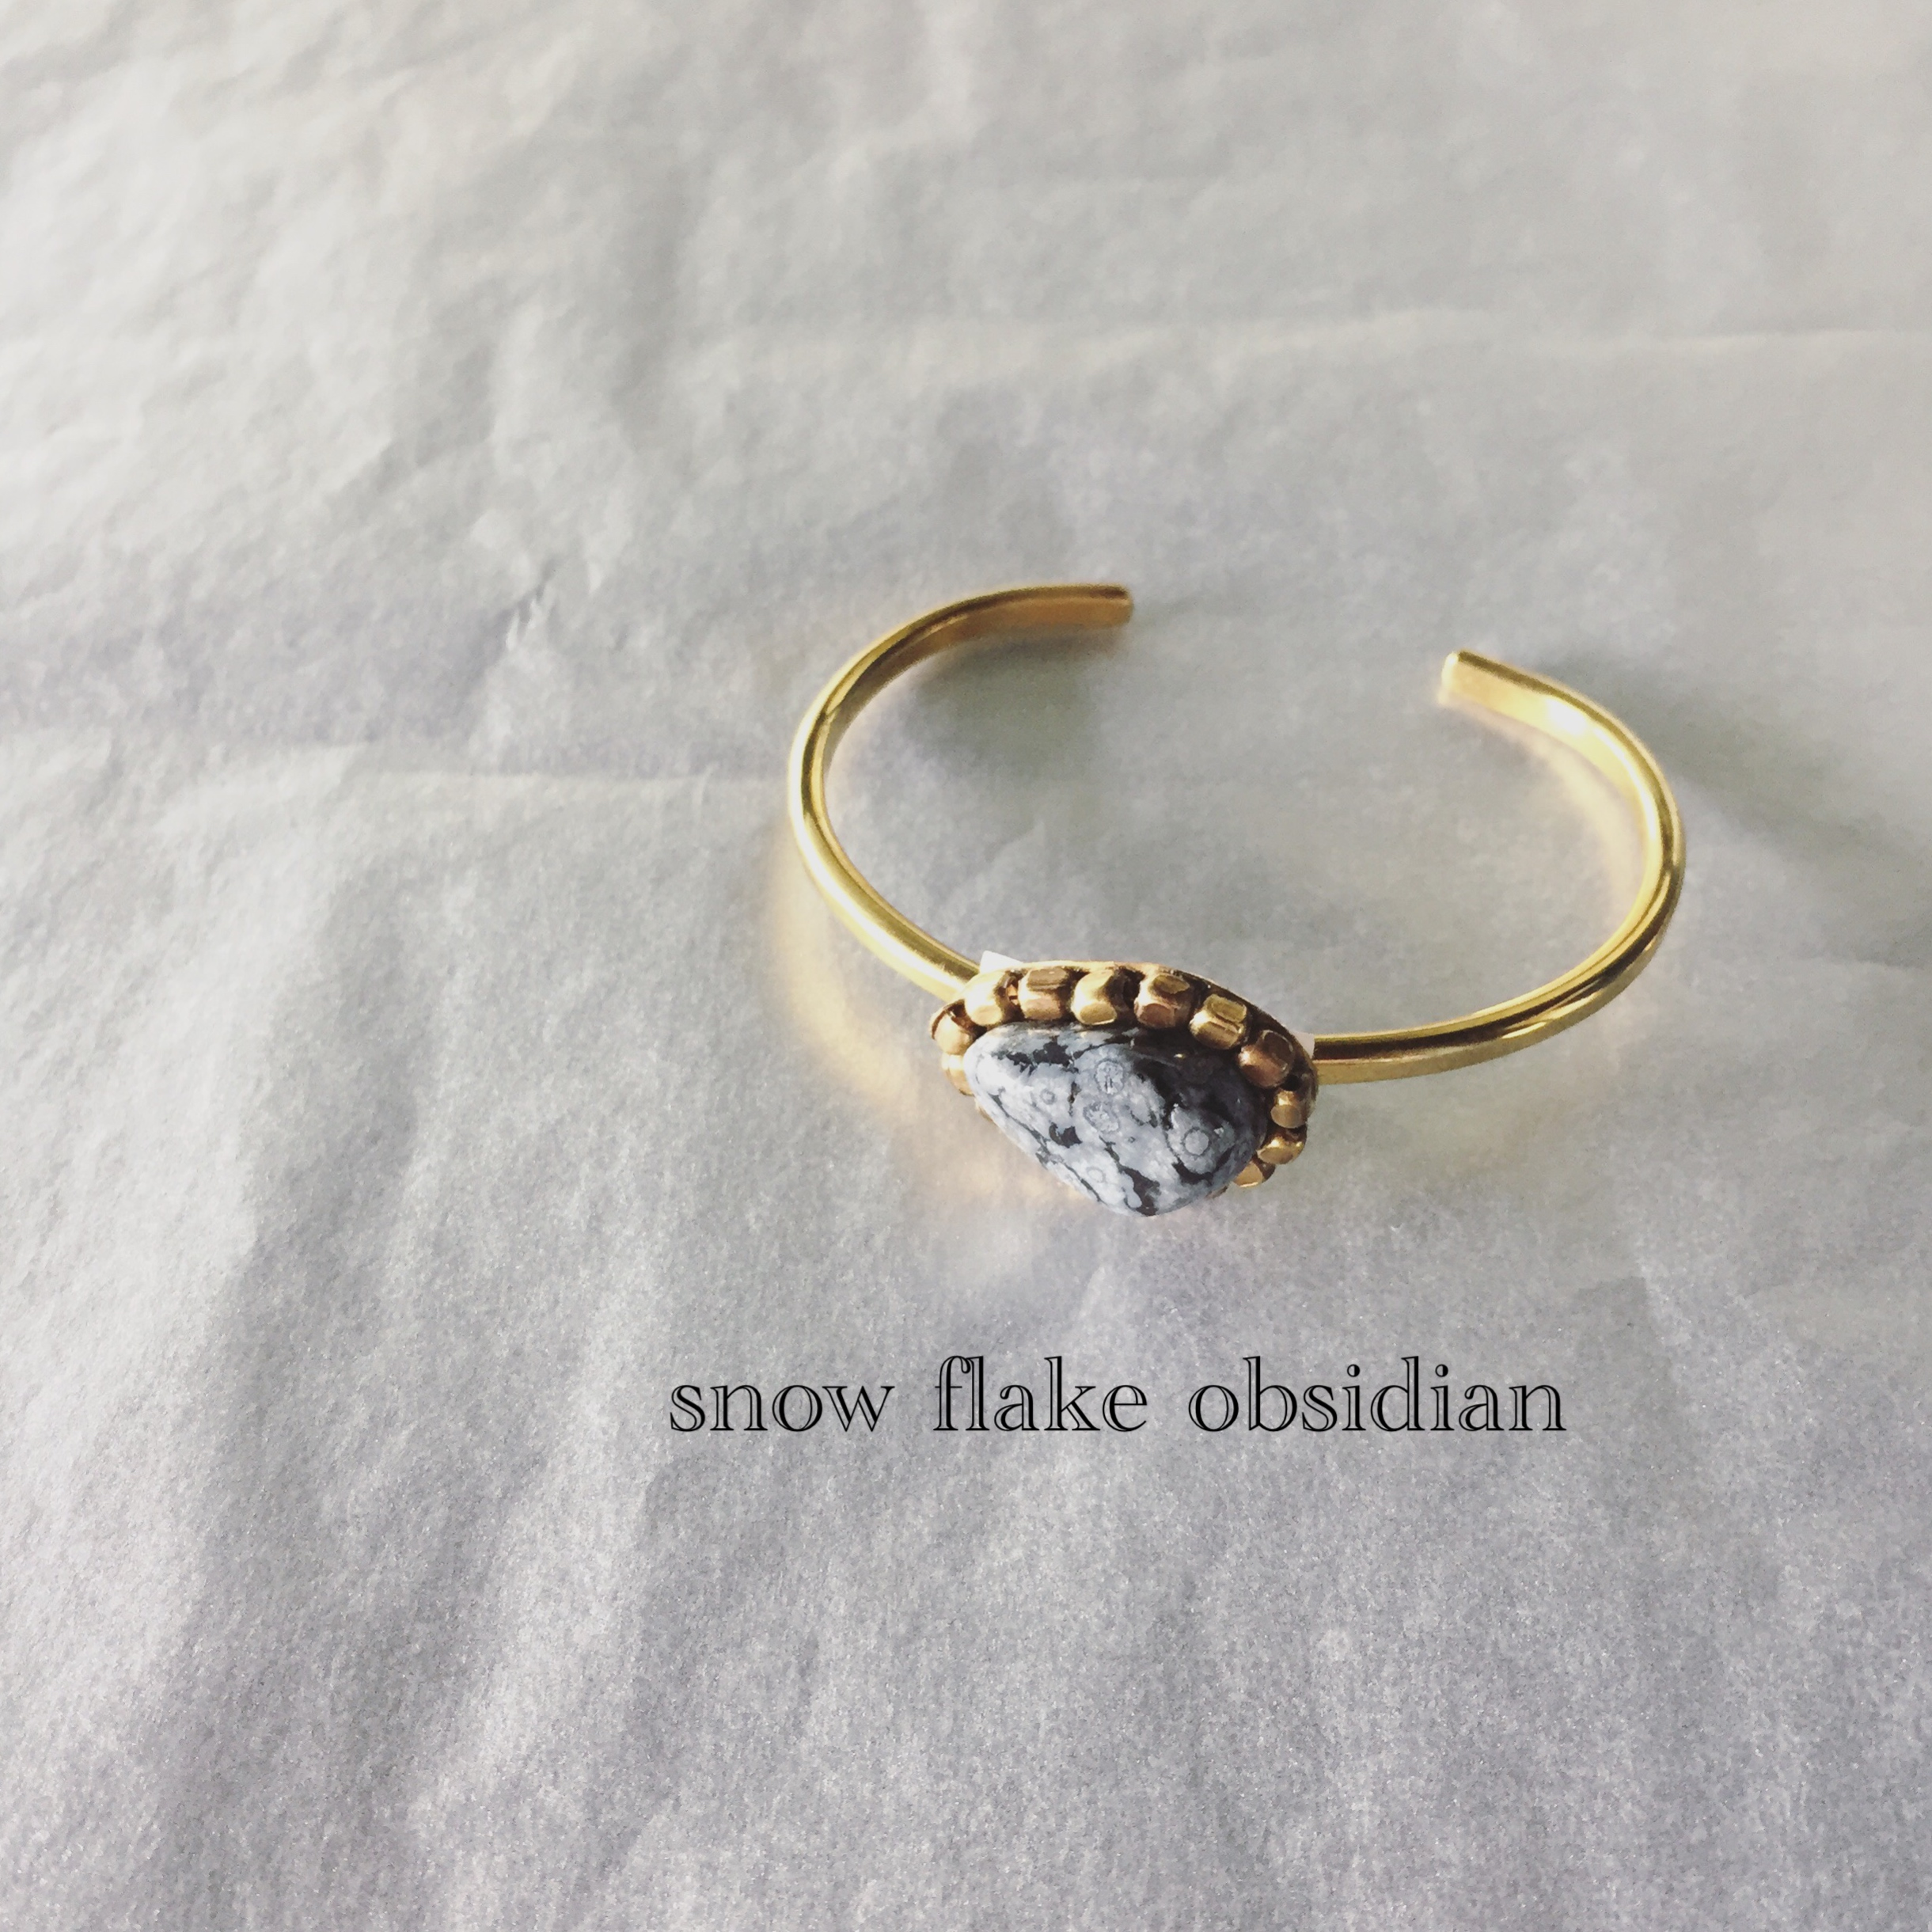 snow flake obsidian